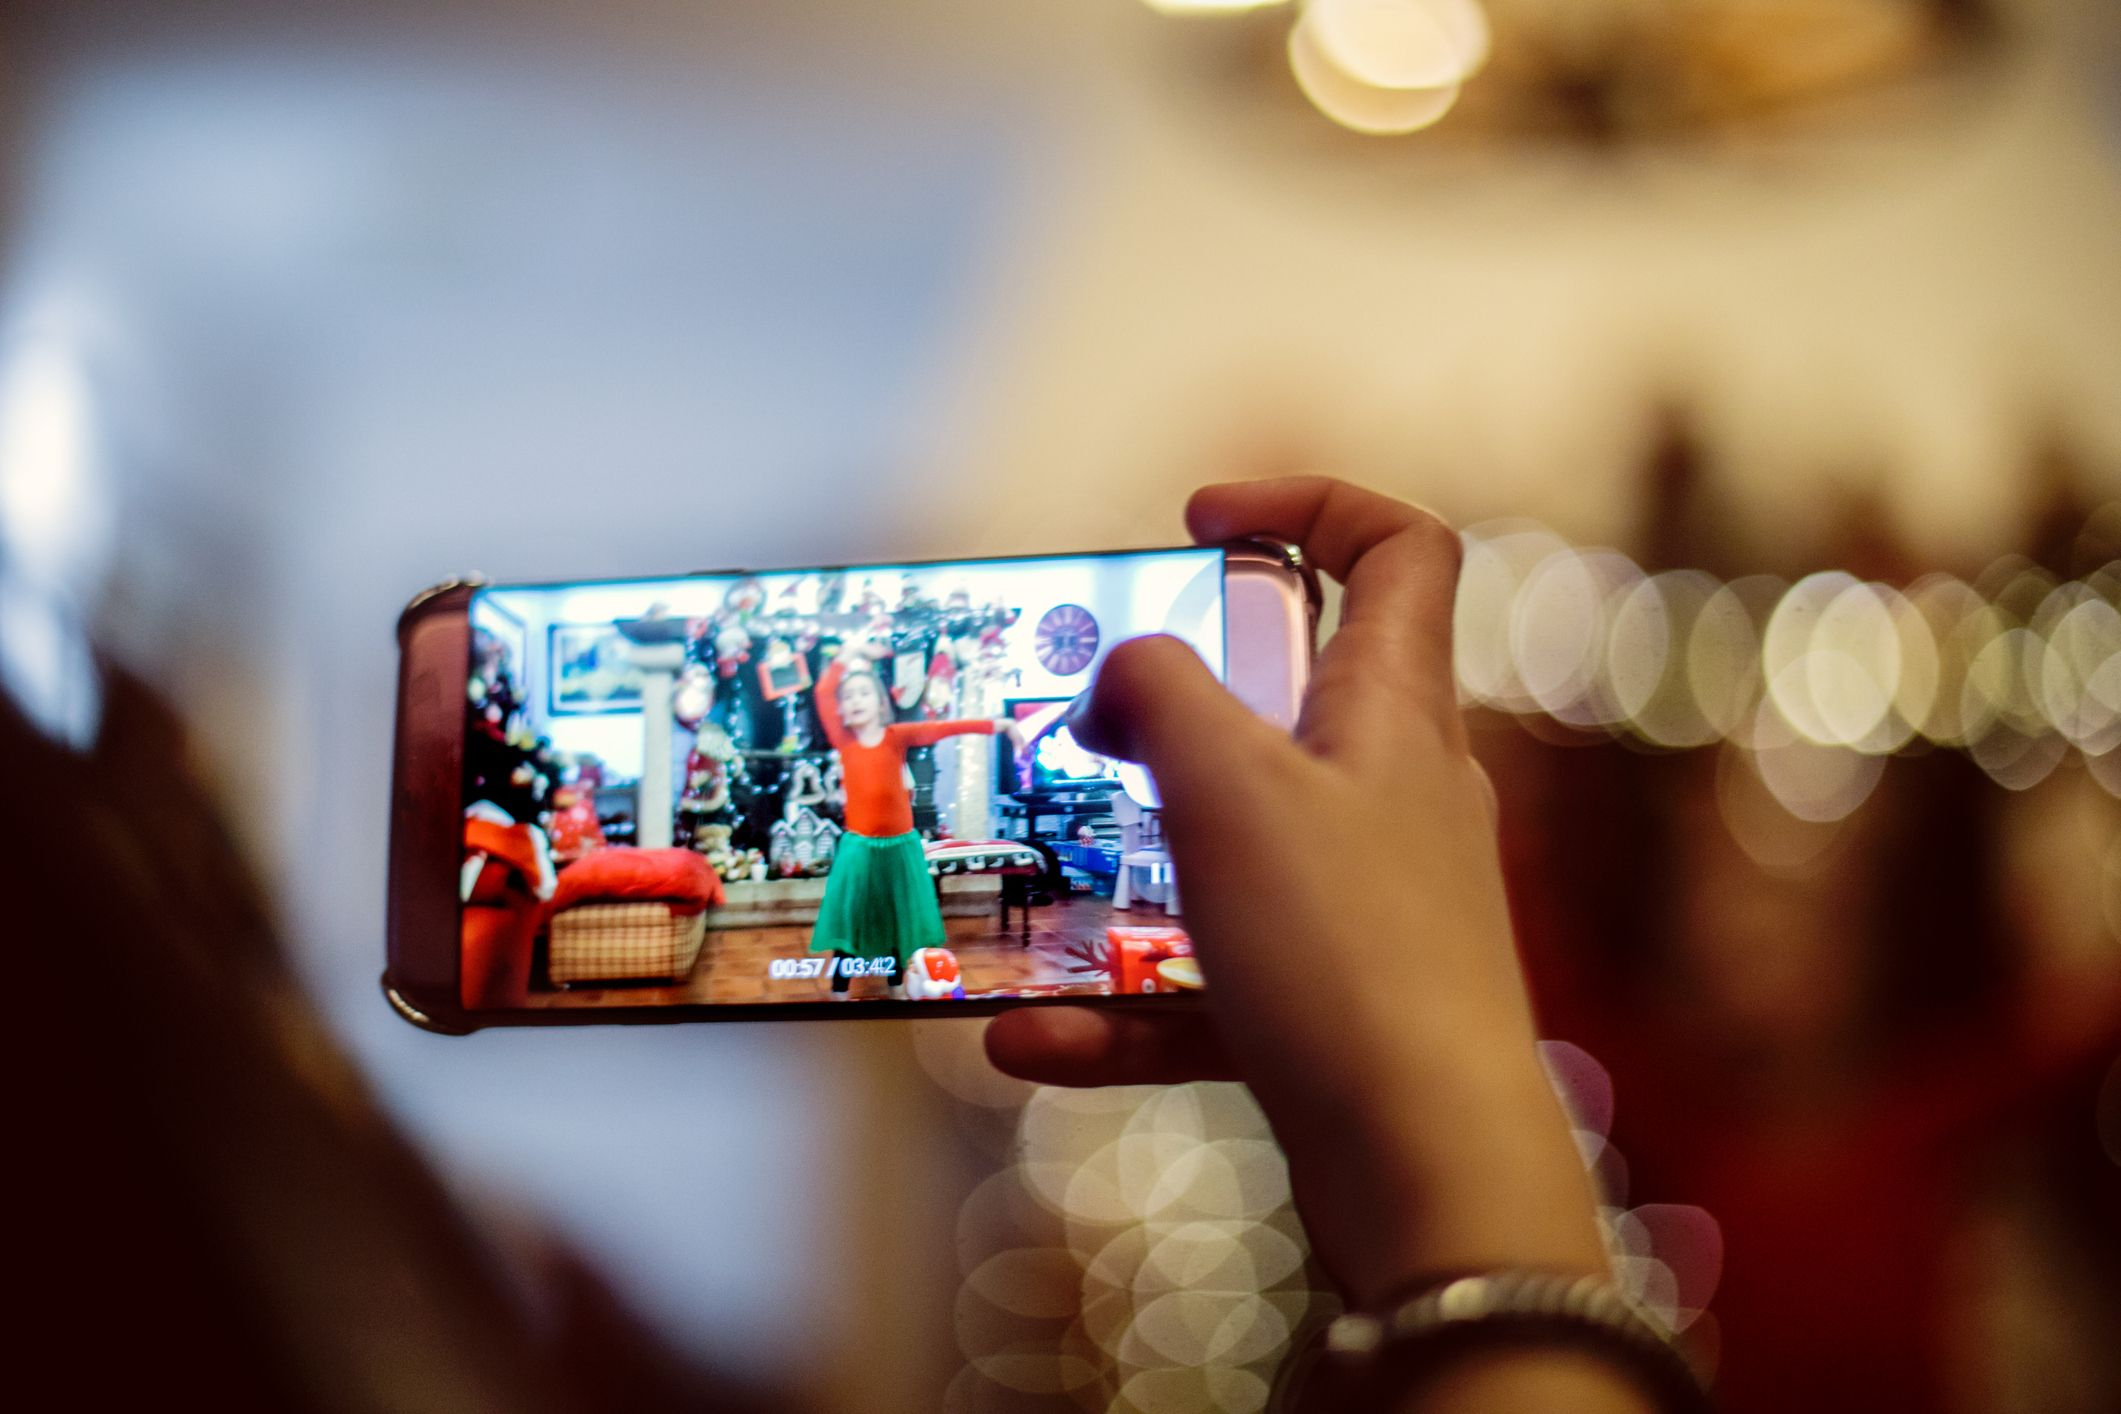 Videos played on a mobile phone